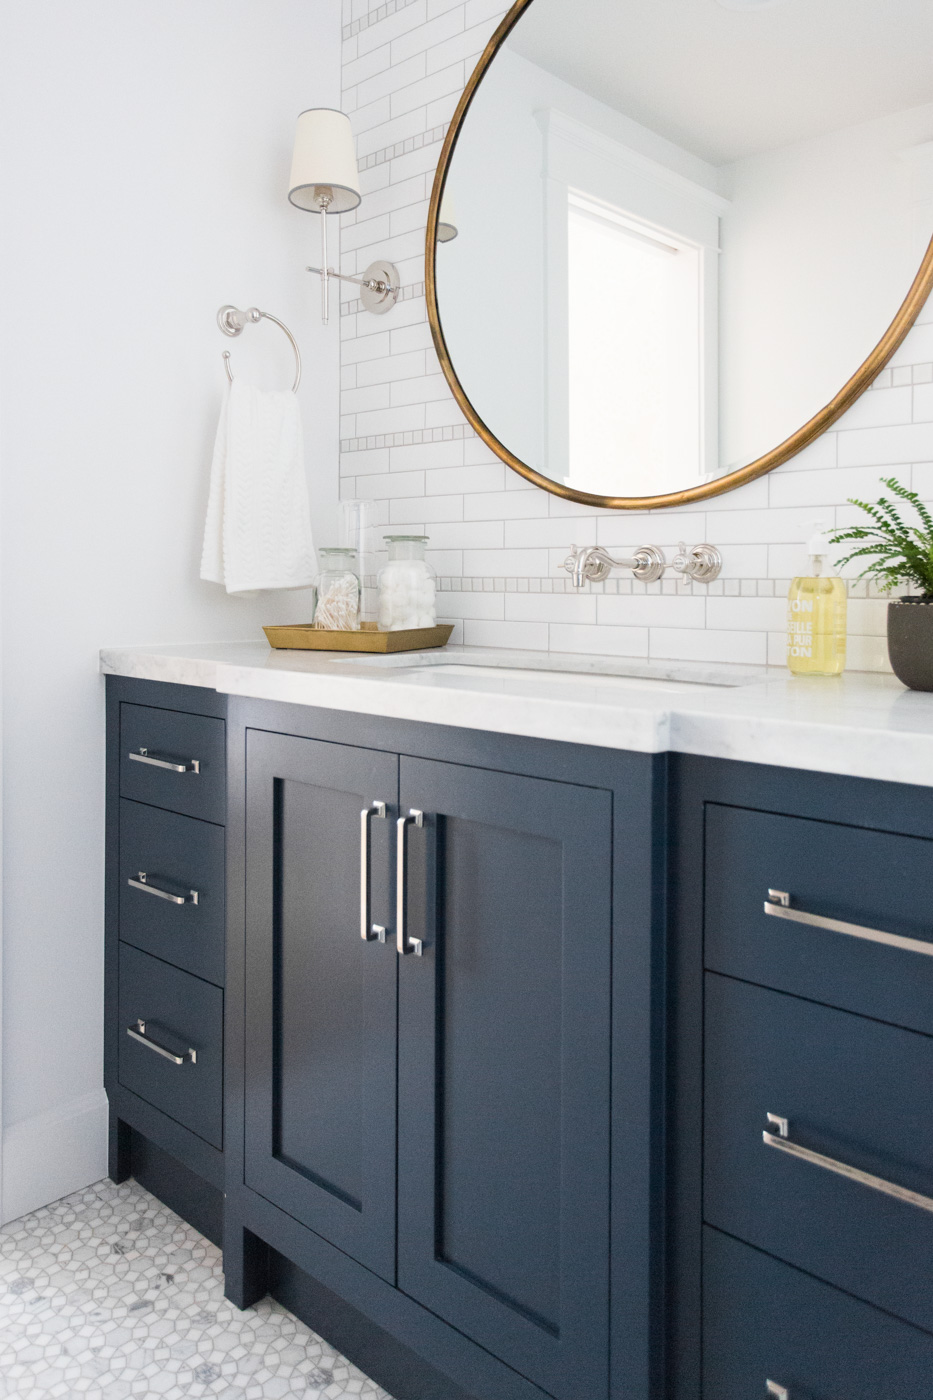 Blue cabinet details on bathroom vanity